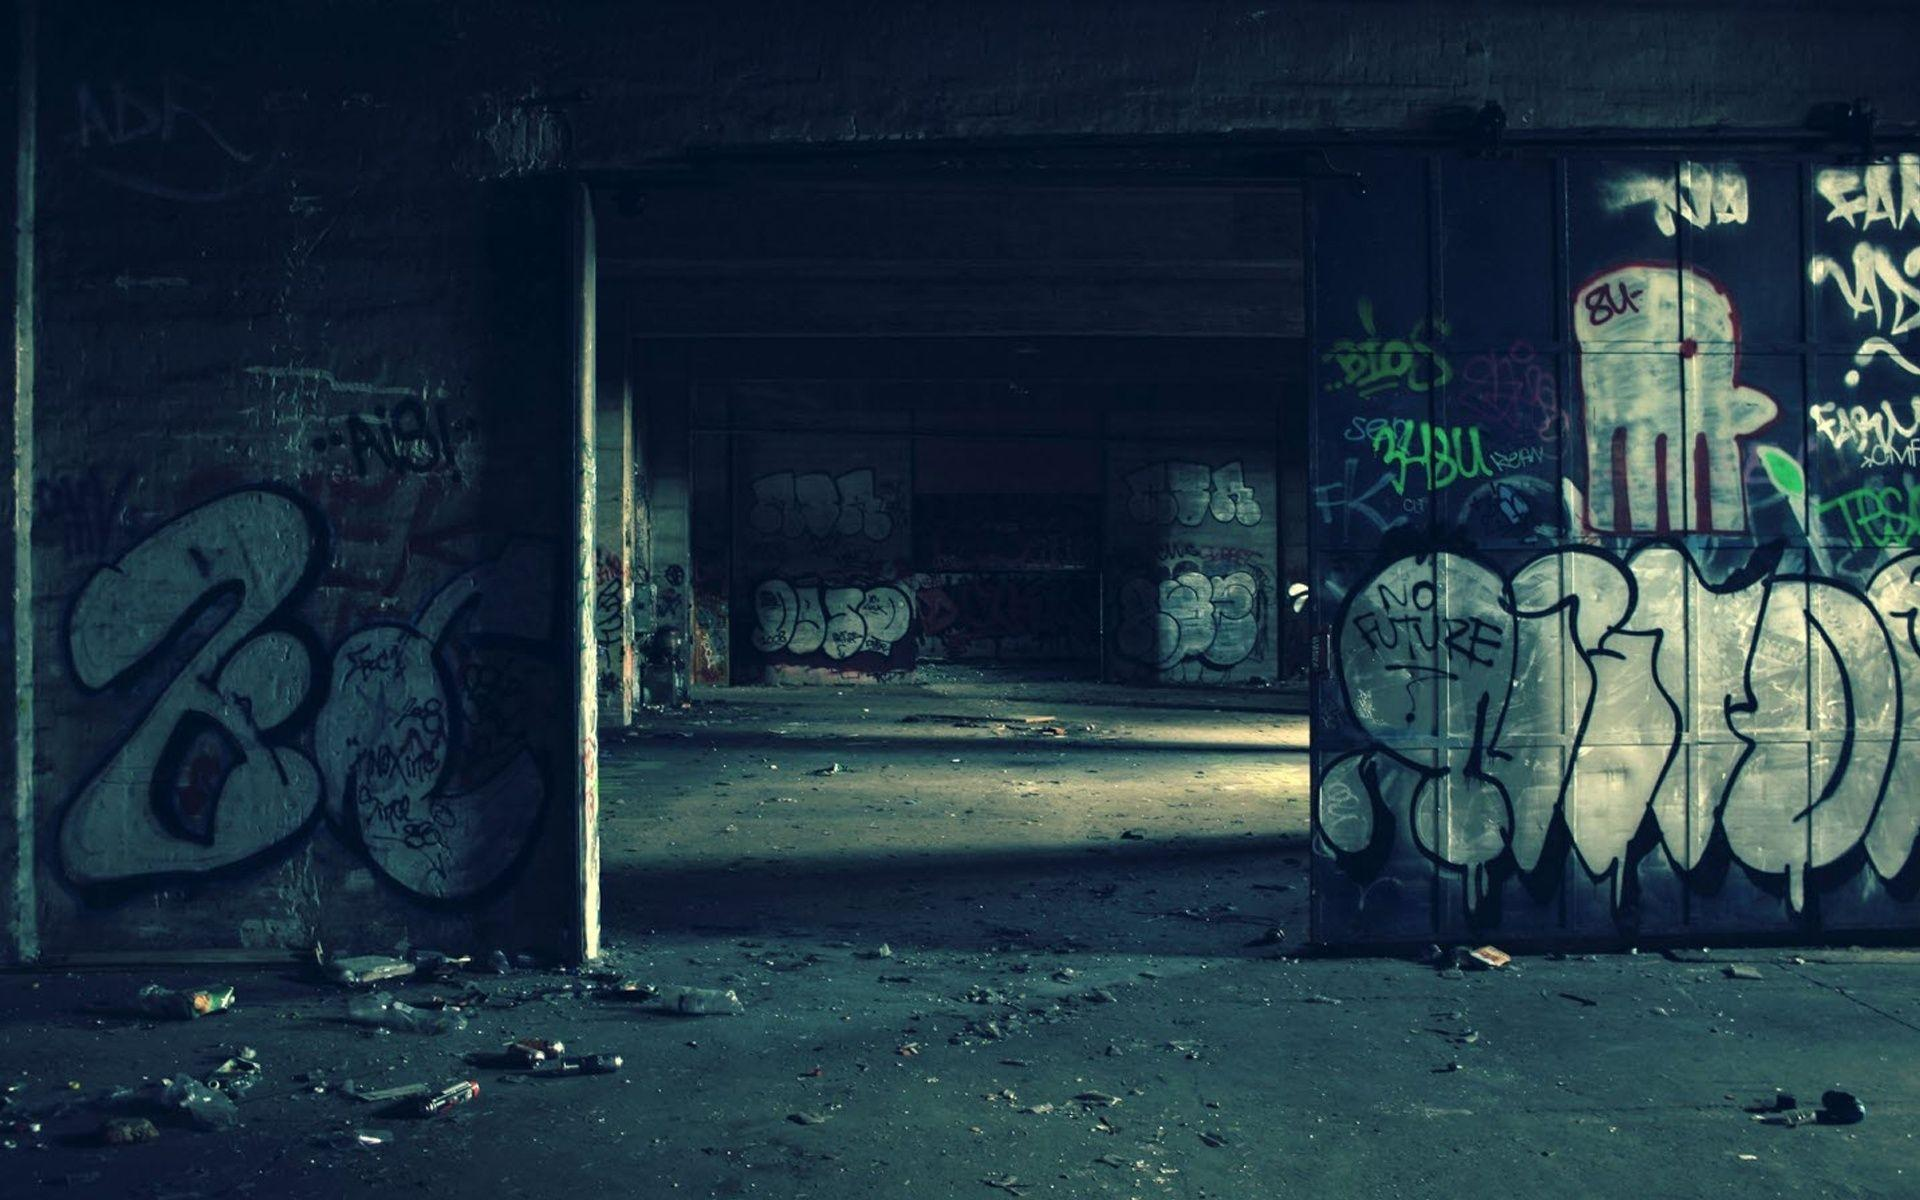 HD Graffiti Wallpapers - Wallpaper Cave